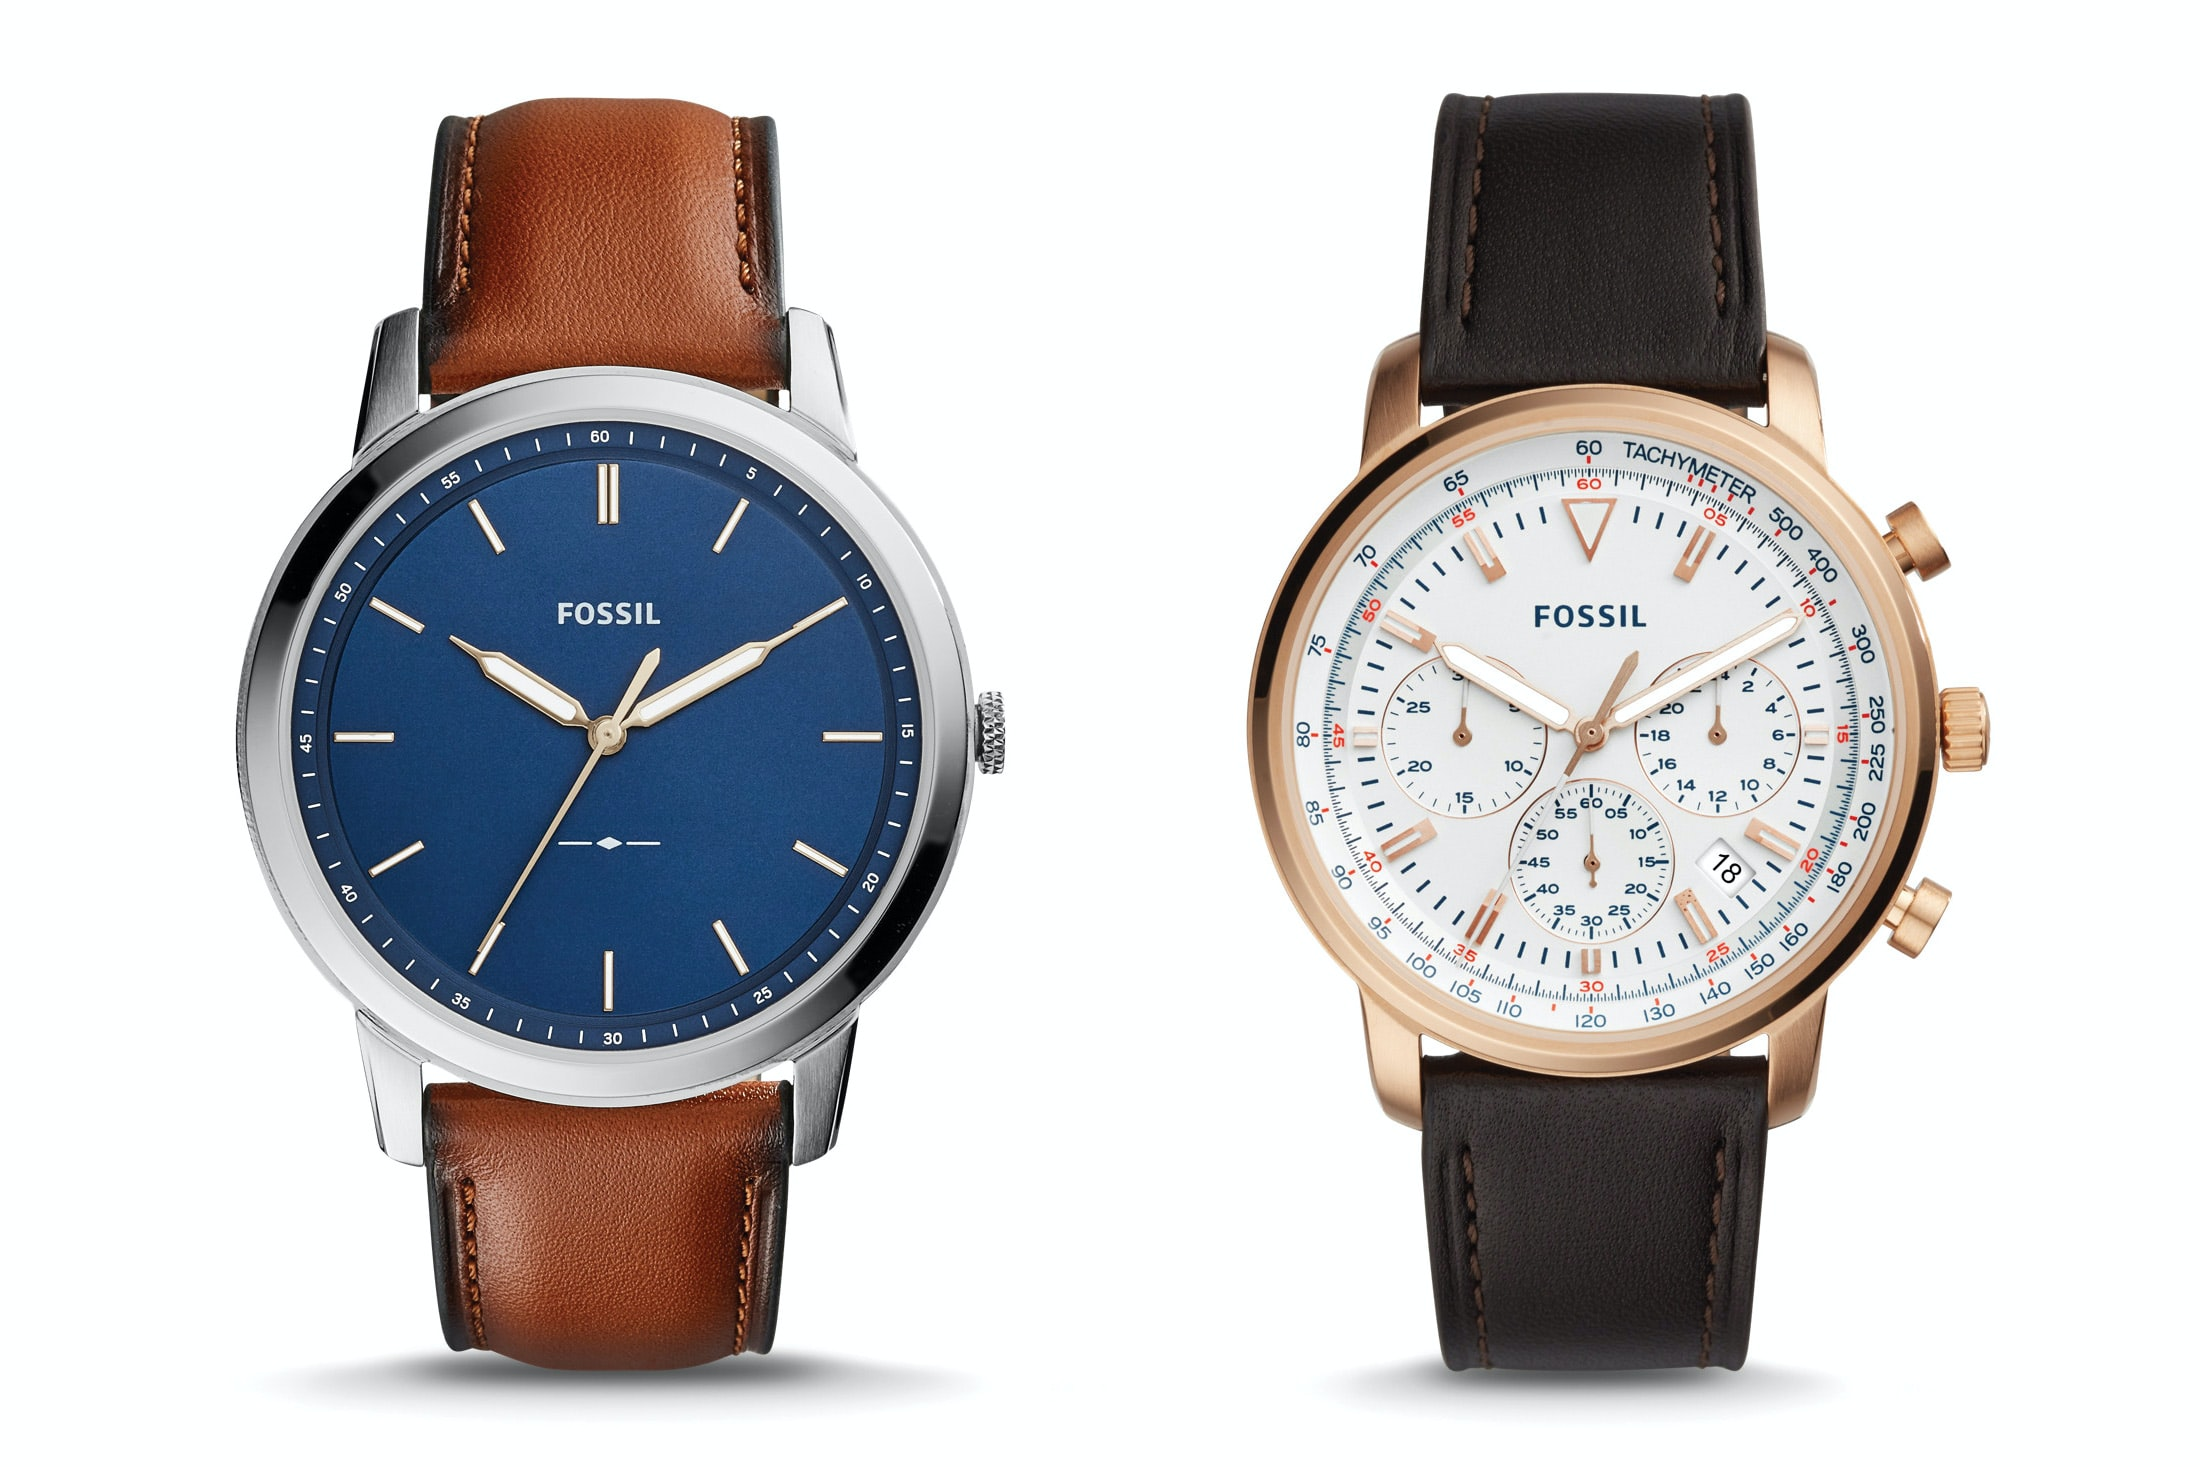 Business News: Smartwatches Are Both A Blessing And A Curse For Fossil Business News: Smartwatches Are Both A Blessing And A Curse For Fossil fossil 2